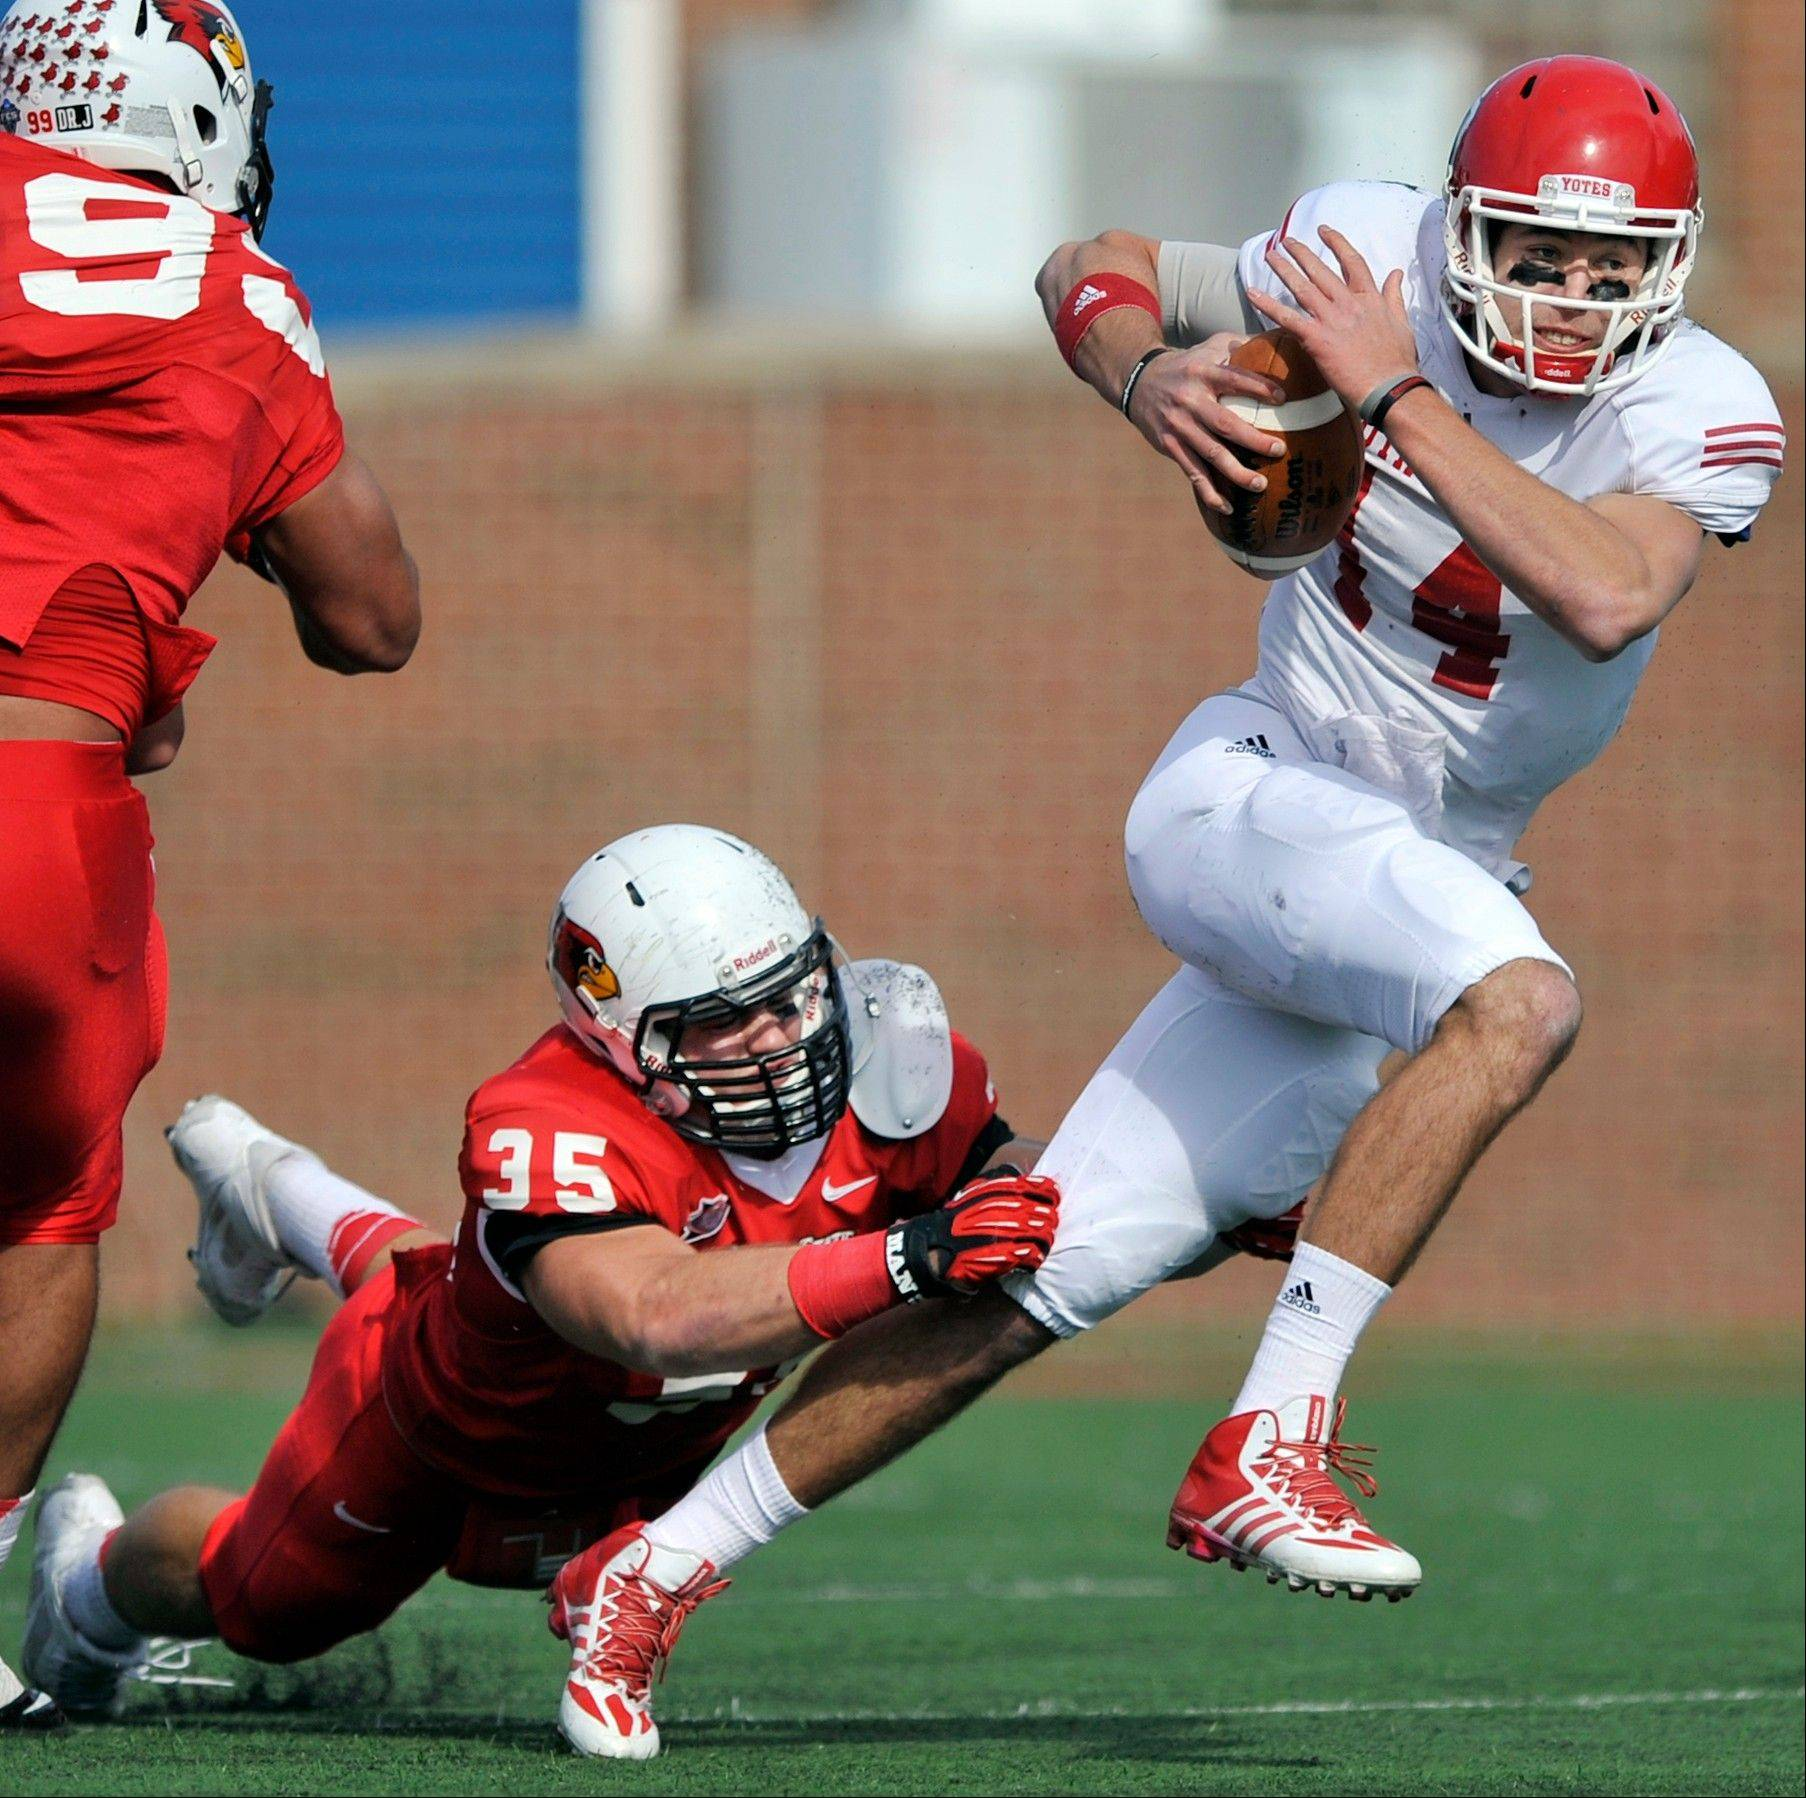 South Dakota quarterback Kevin Earl, right, breaks a tackle against Illinois State�s Colton Underwood (35), during the first half.